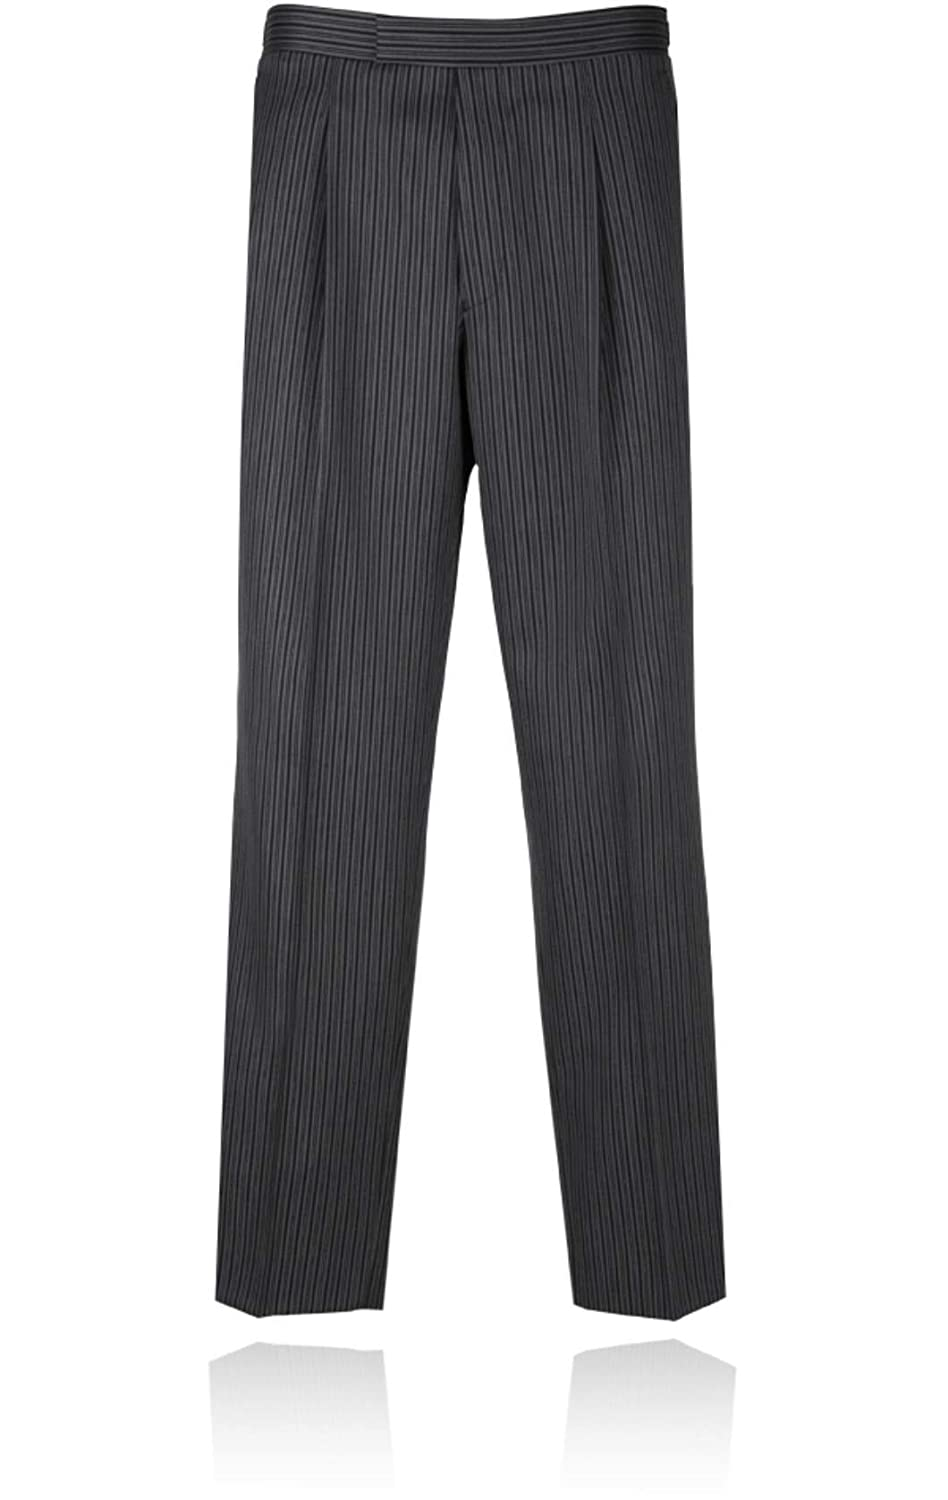 Edwardian Men's Formal Wear Mens Black & Grey Striped Morning Suit Trousers £50.00 AT vintagedancer.com